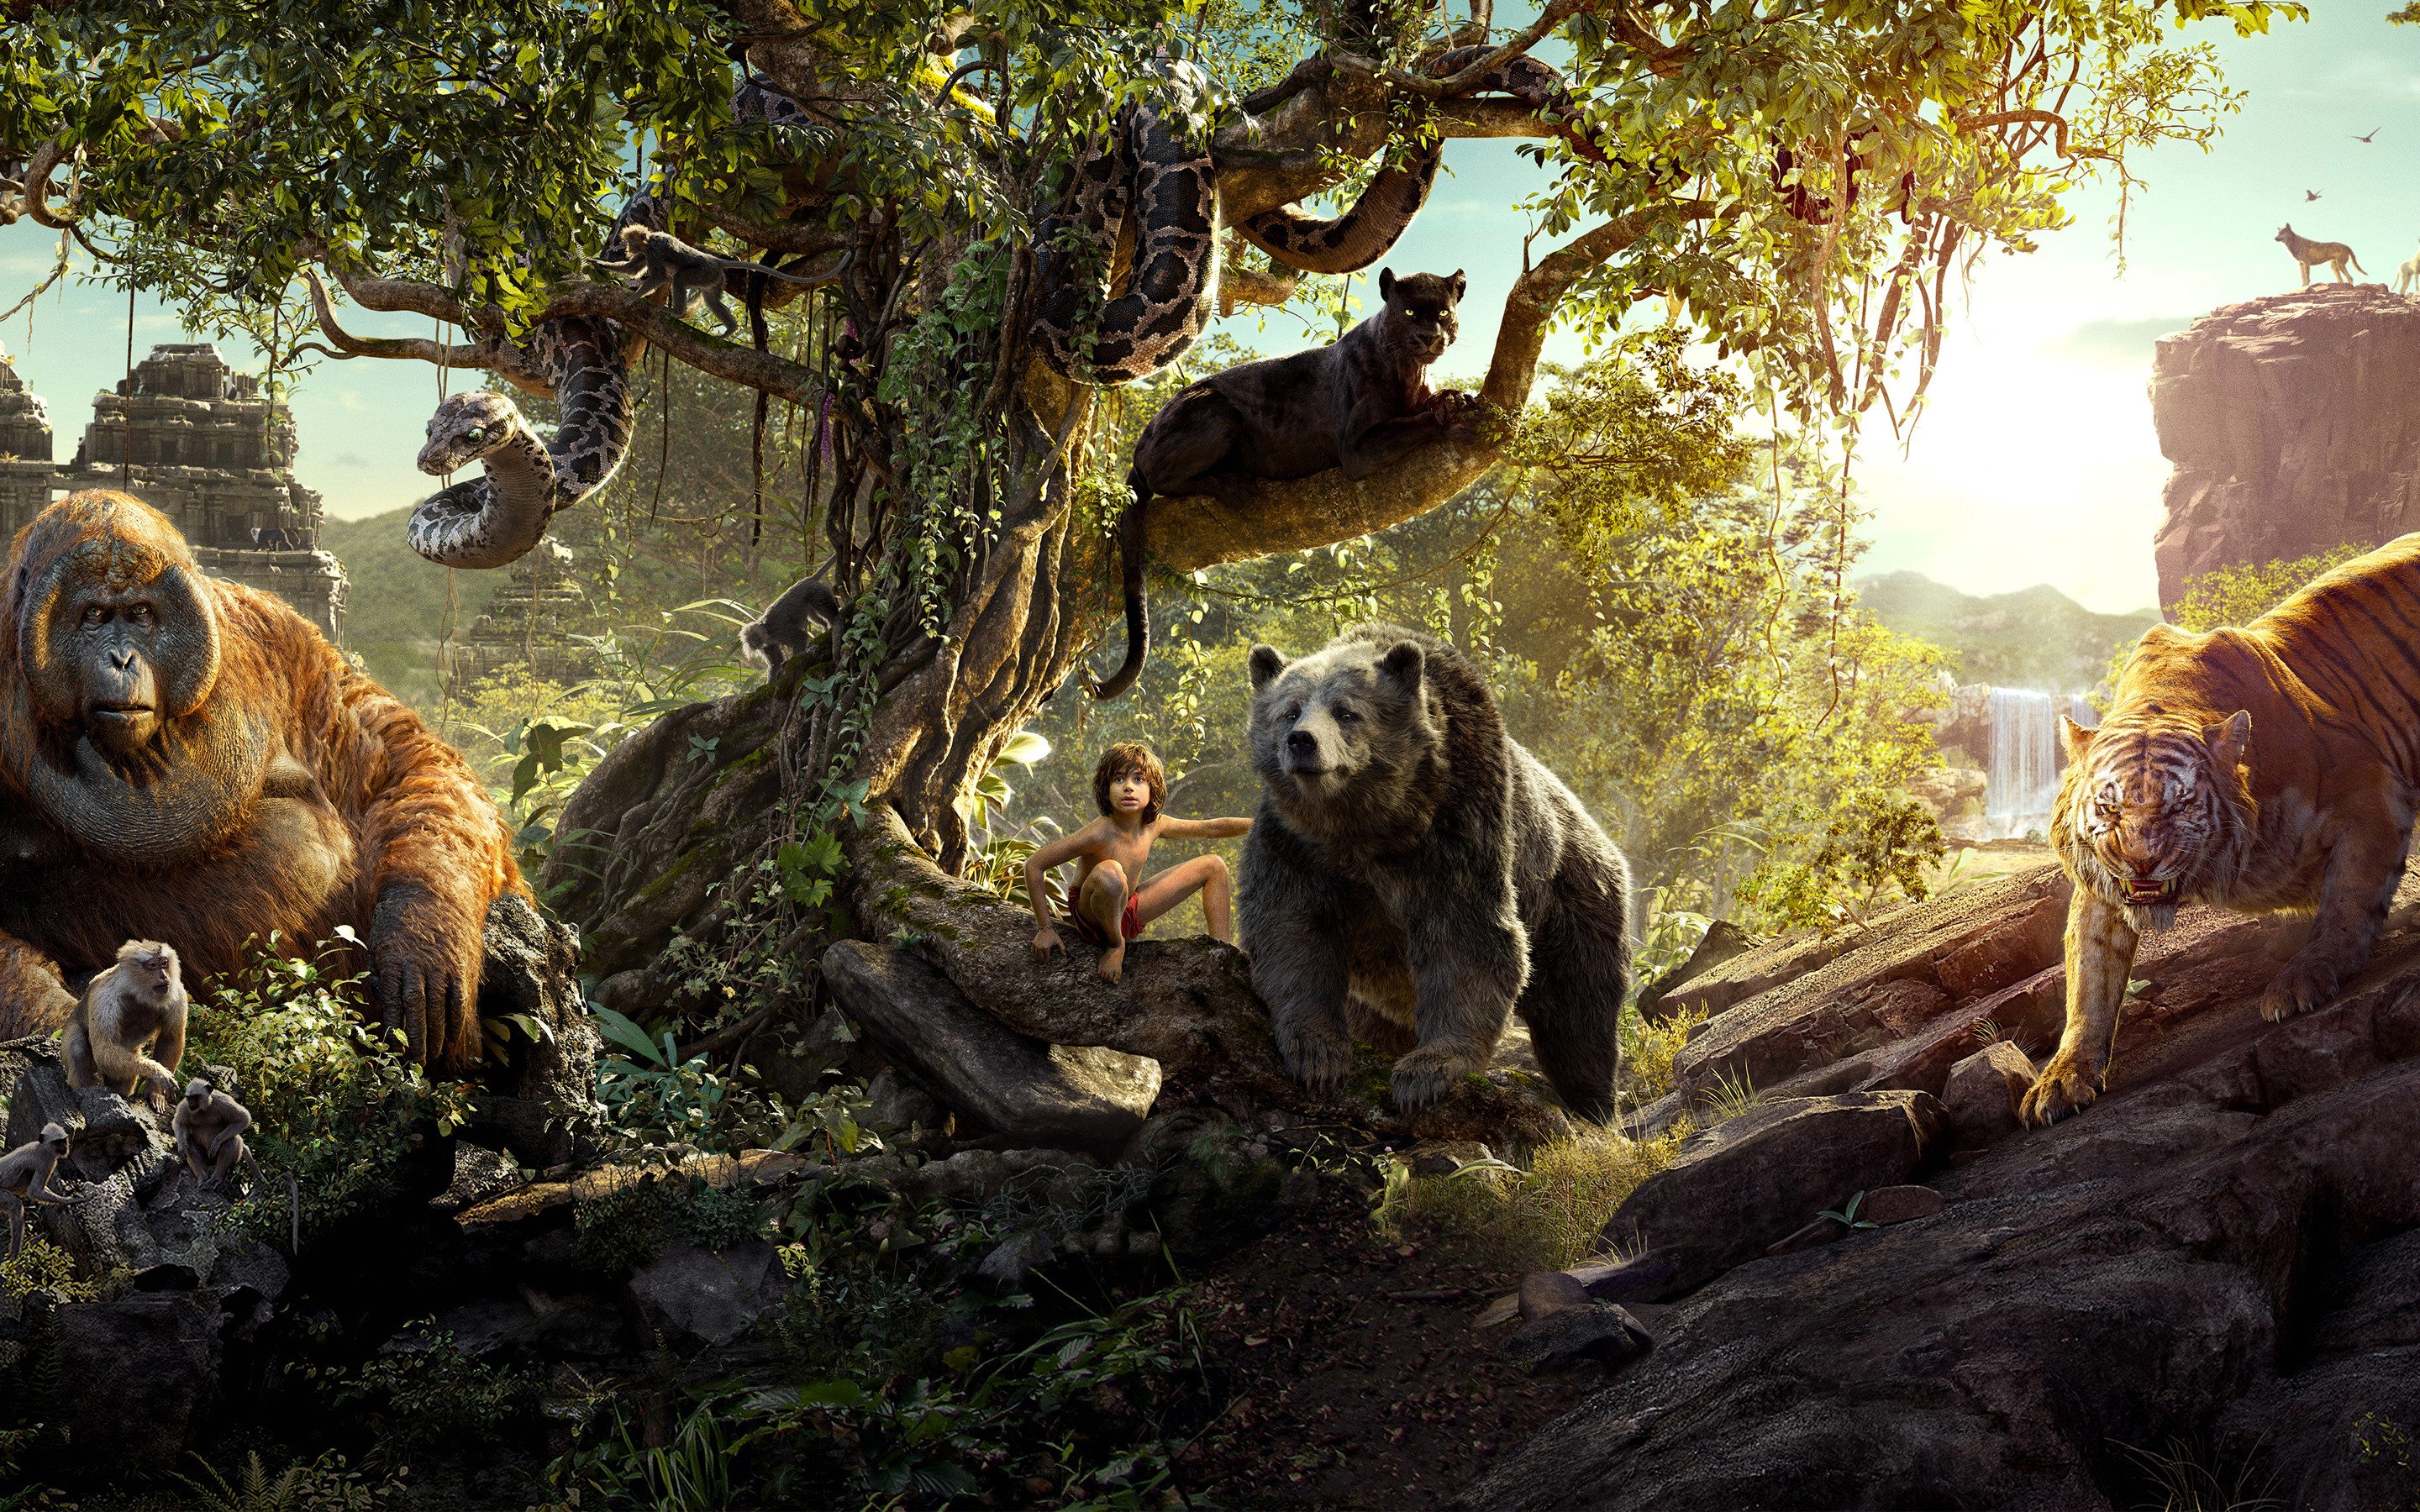 The Jungle Book Wallpapers 71 Pictures